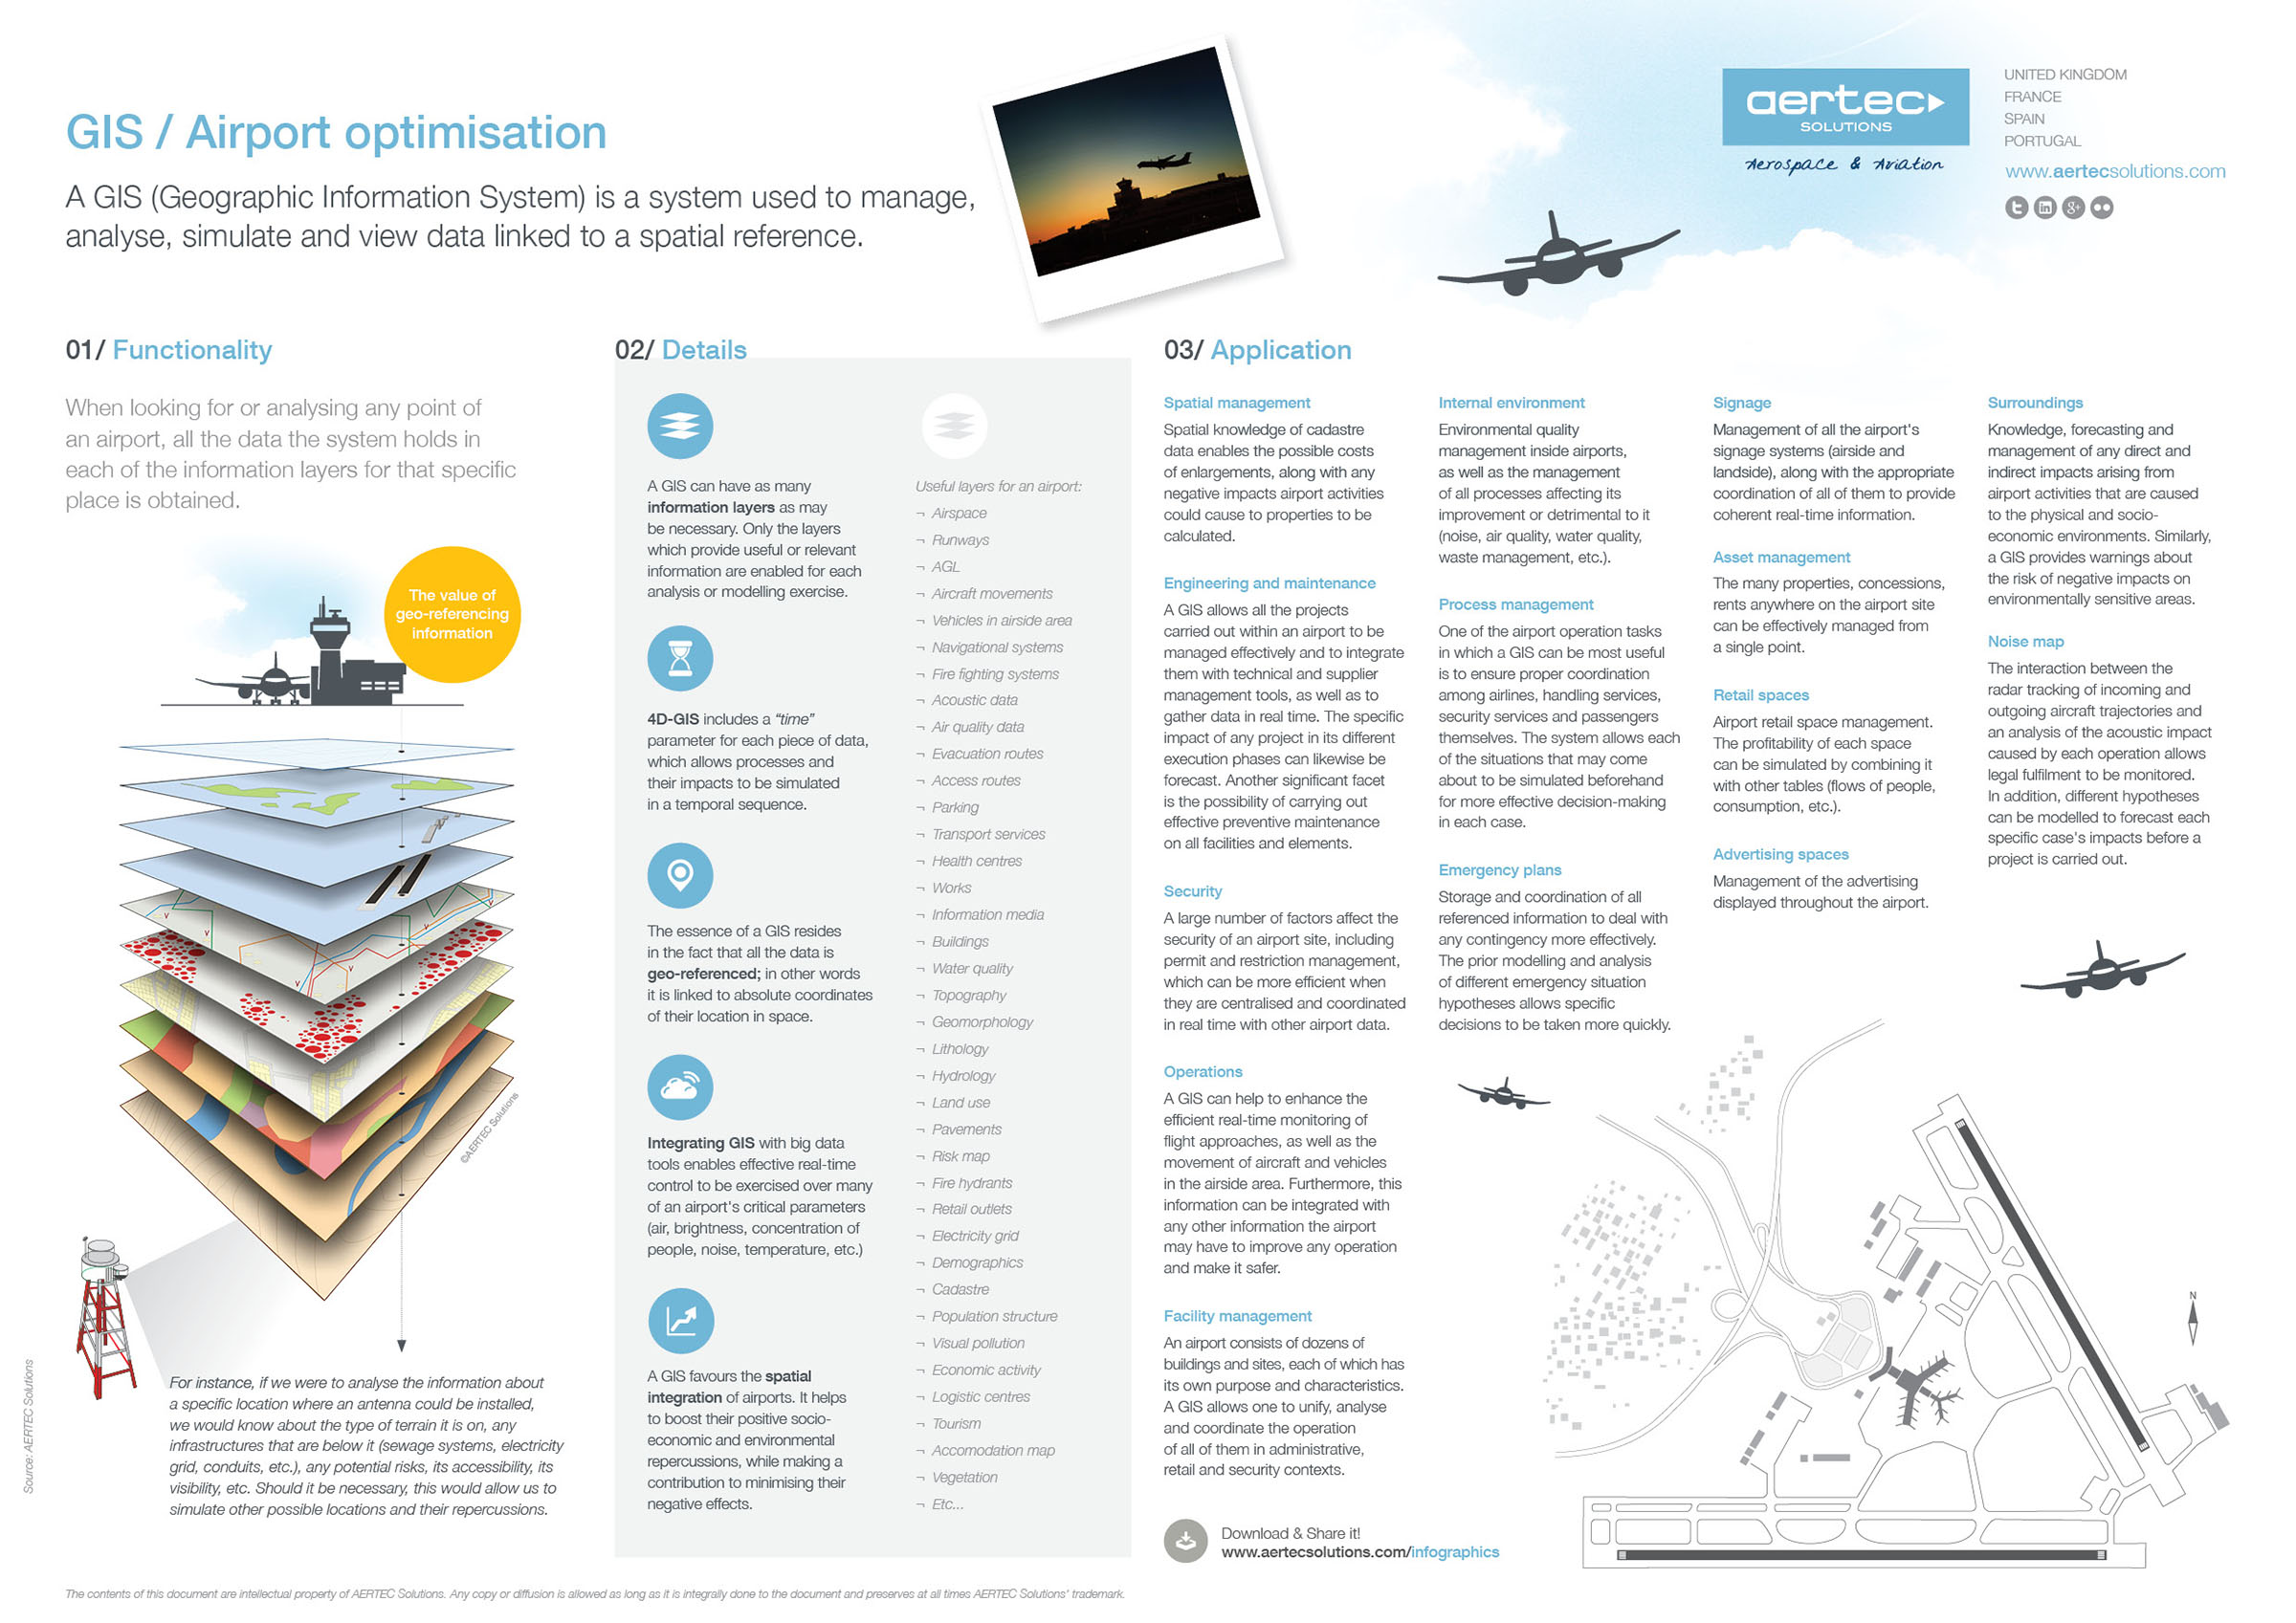 Infographic: Airport GIS